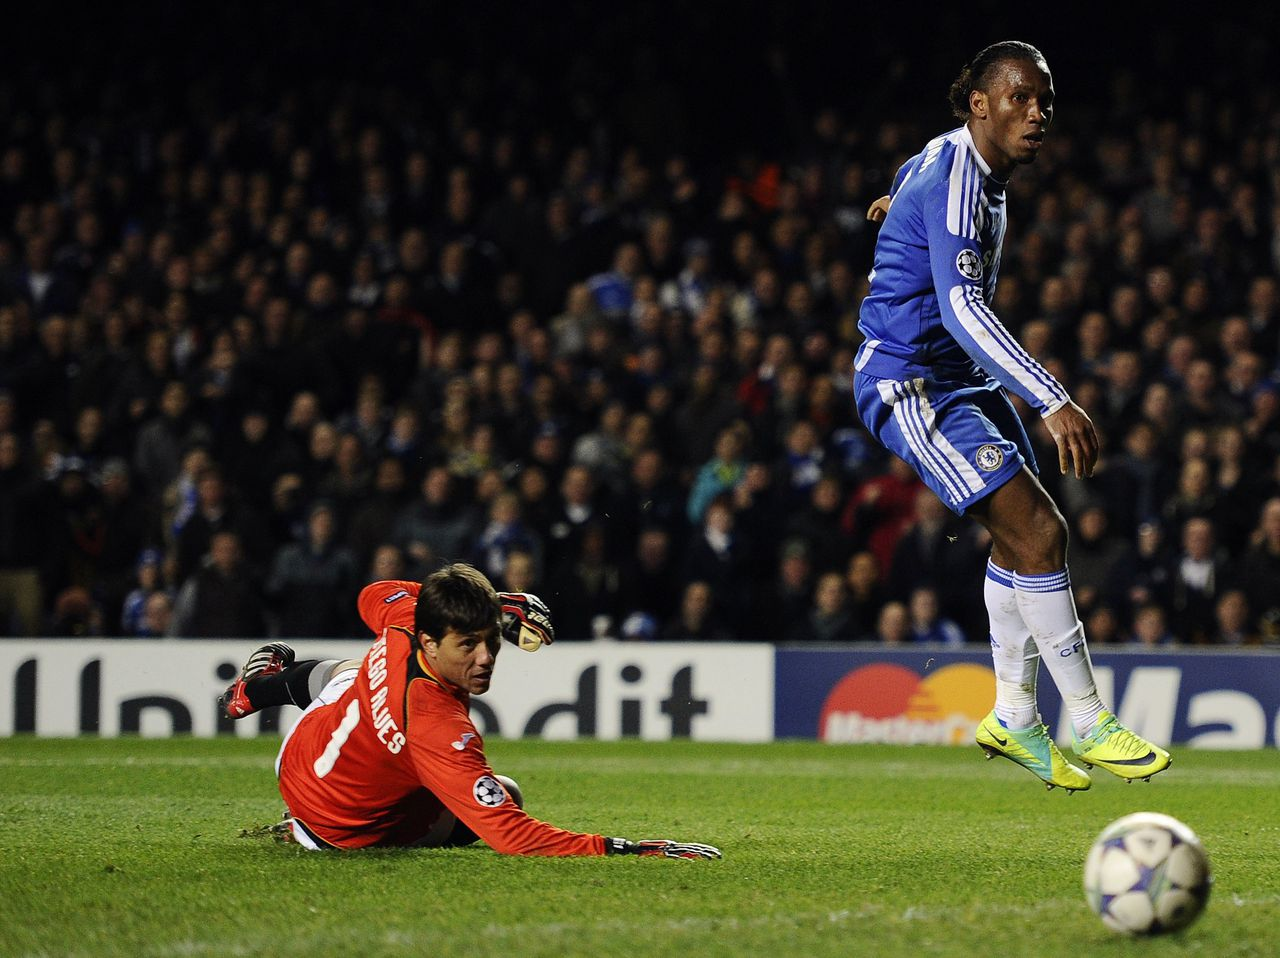 Chelsea's Didier Drogba (R) scores against Valencia's goalkeeper Diego Alves during their Champions League Group E soccer match at Stamford Bridge in London December 6, 2011. REUTERS/Dylan Martinez (BRITAIN - Tags: SPORT SOCCER)